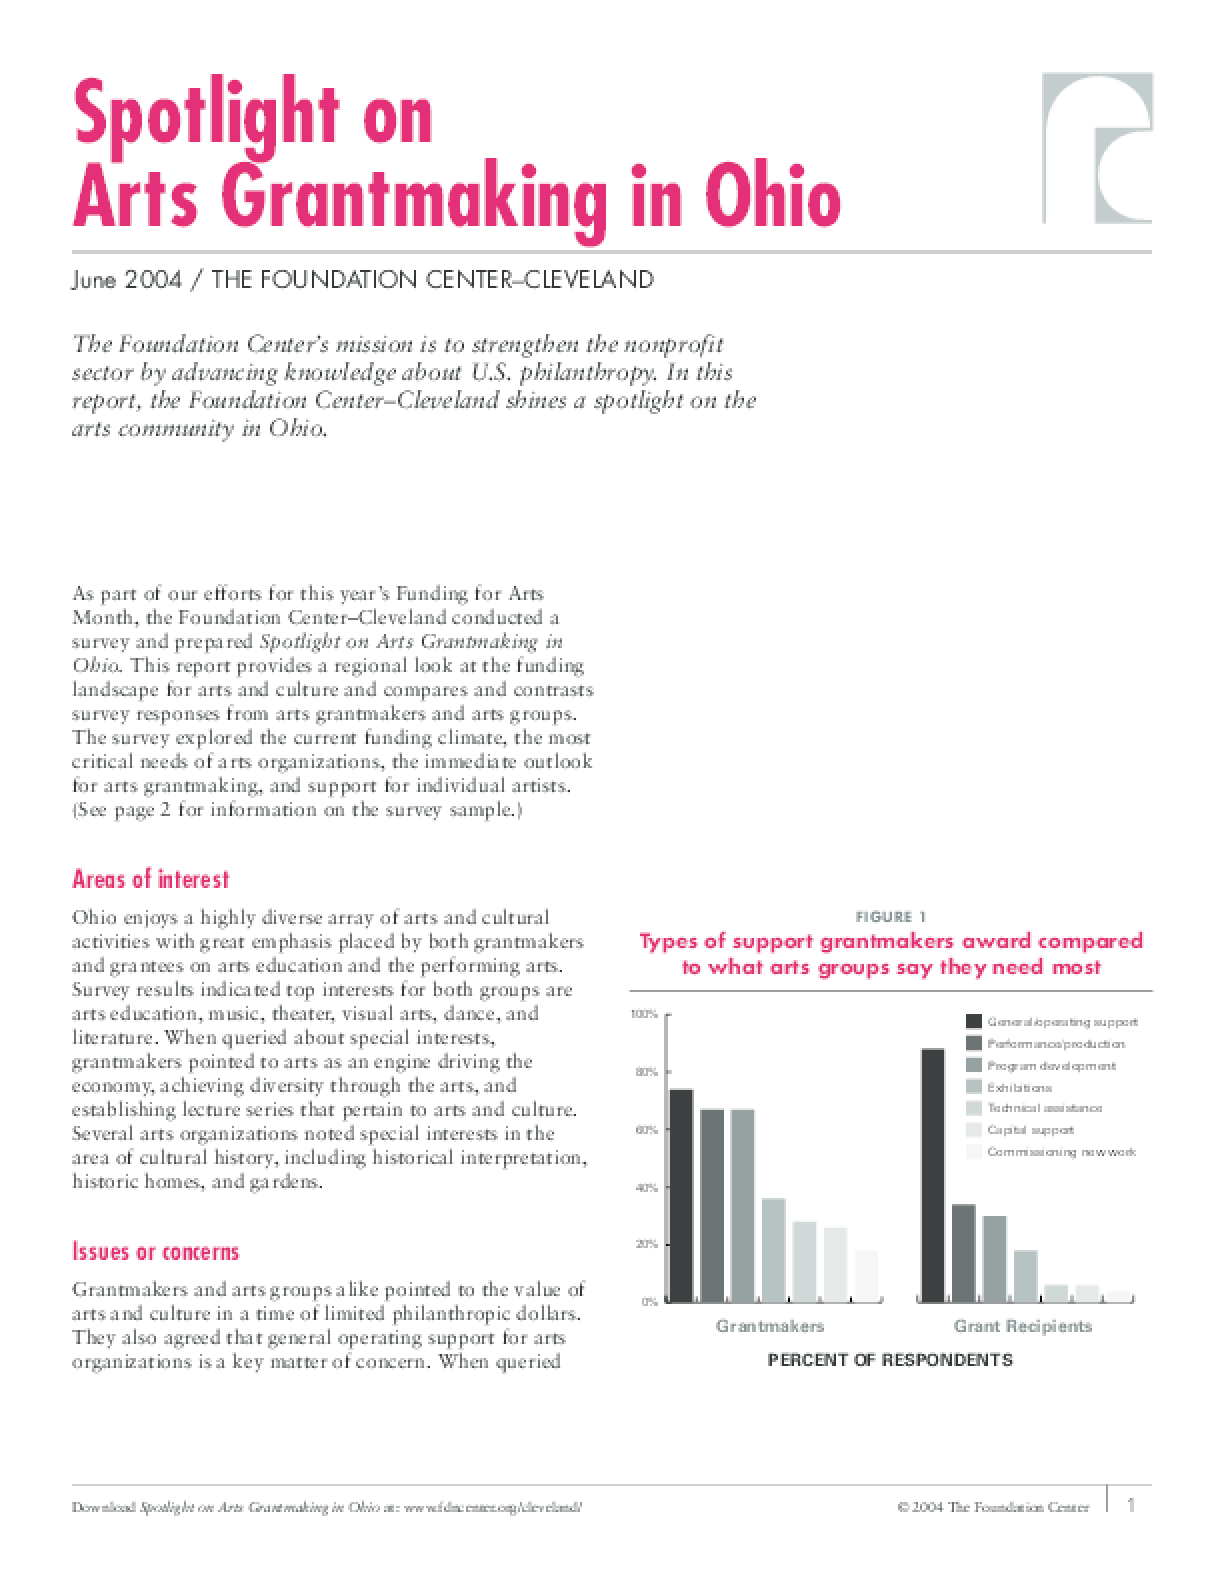 Spotlight on Arts Grantmaking in Ohio 2004